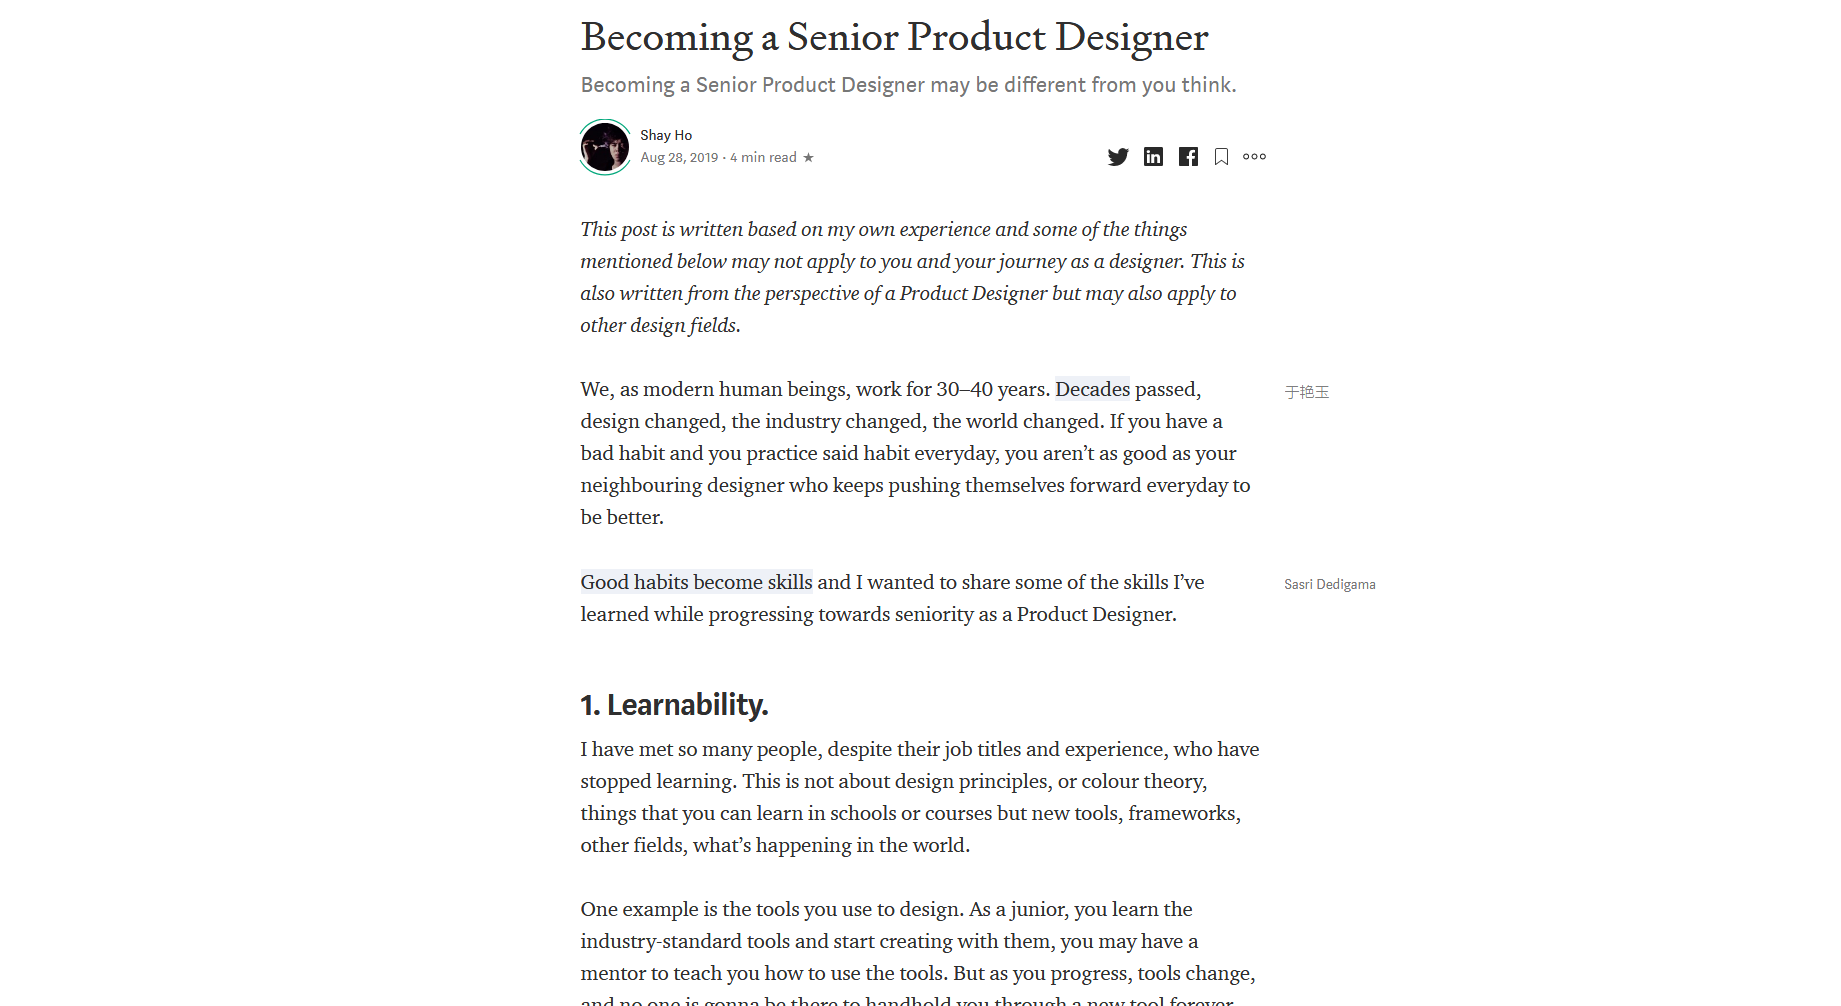 Becoming a Senior Product Designer